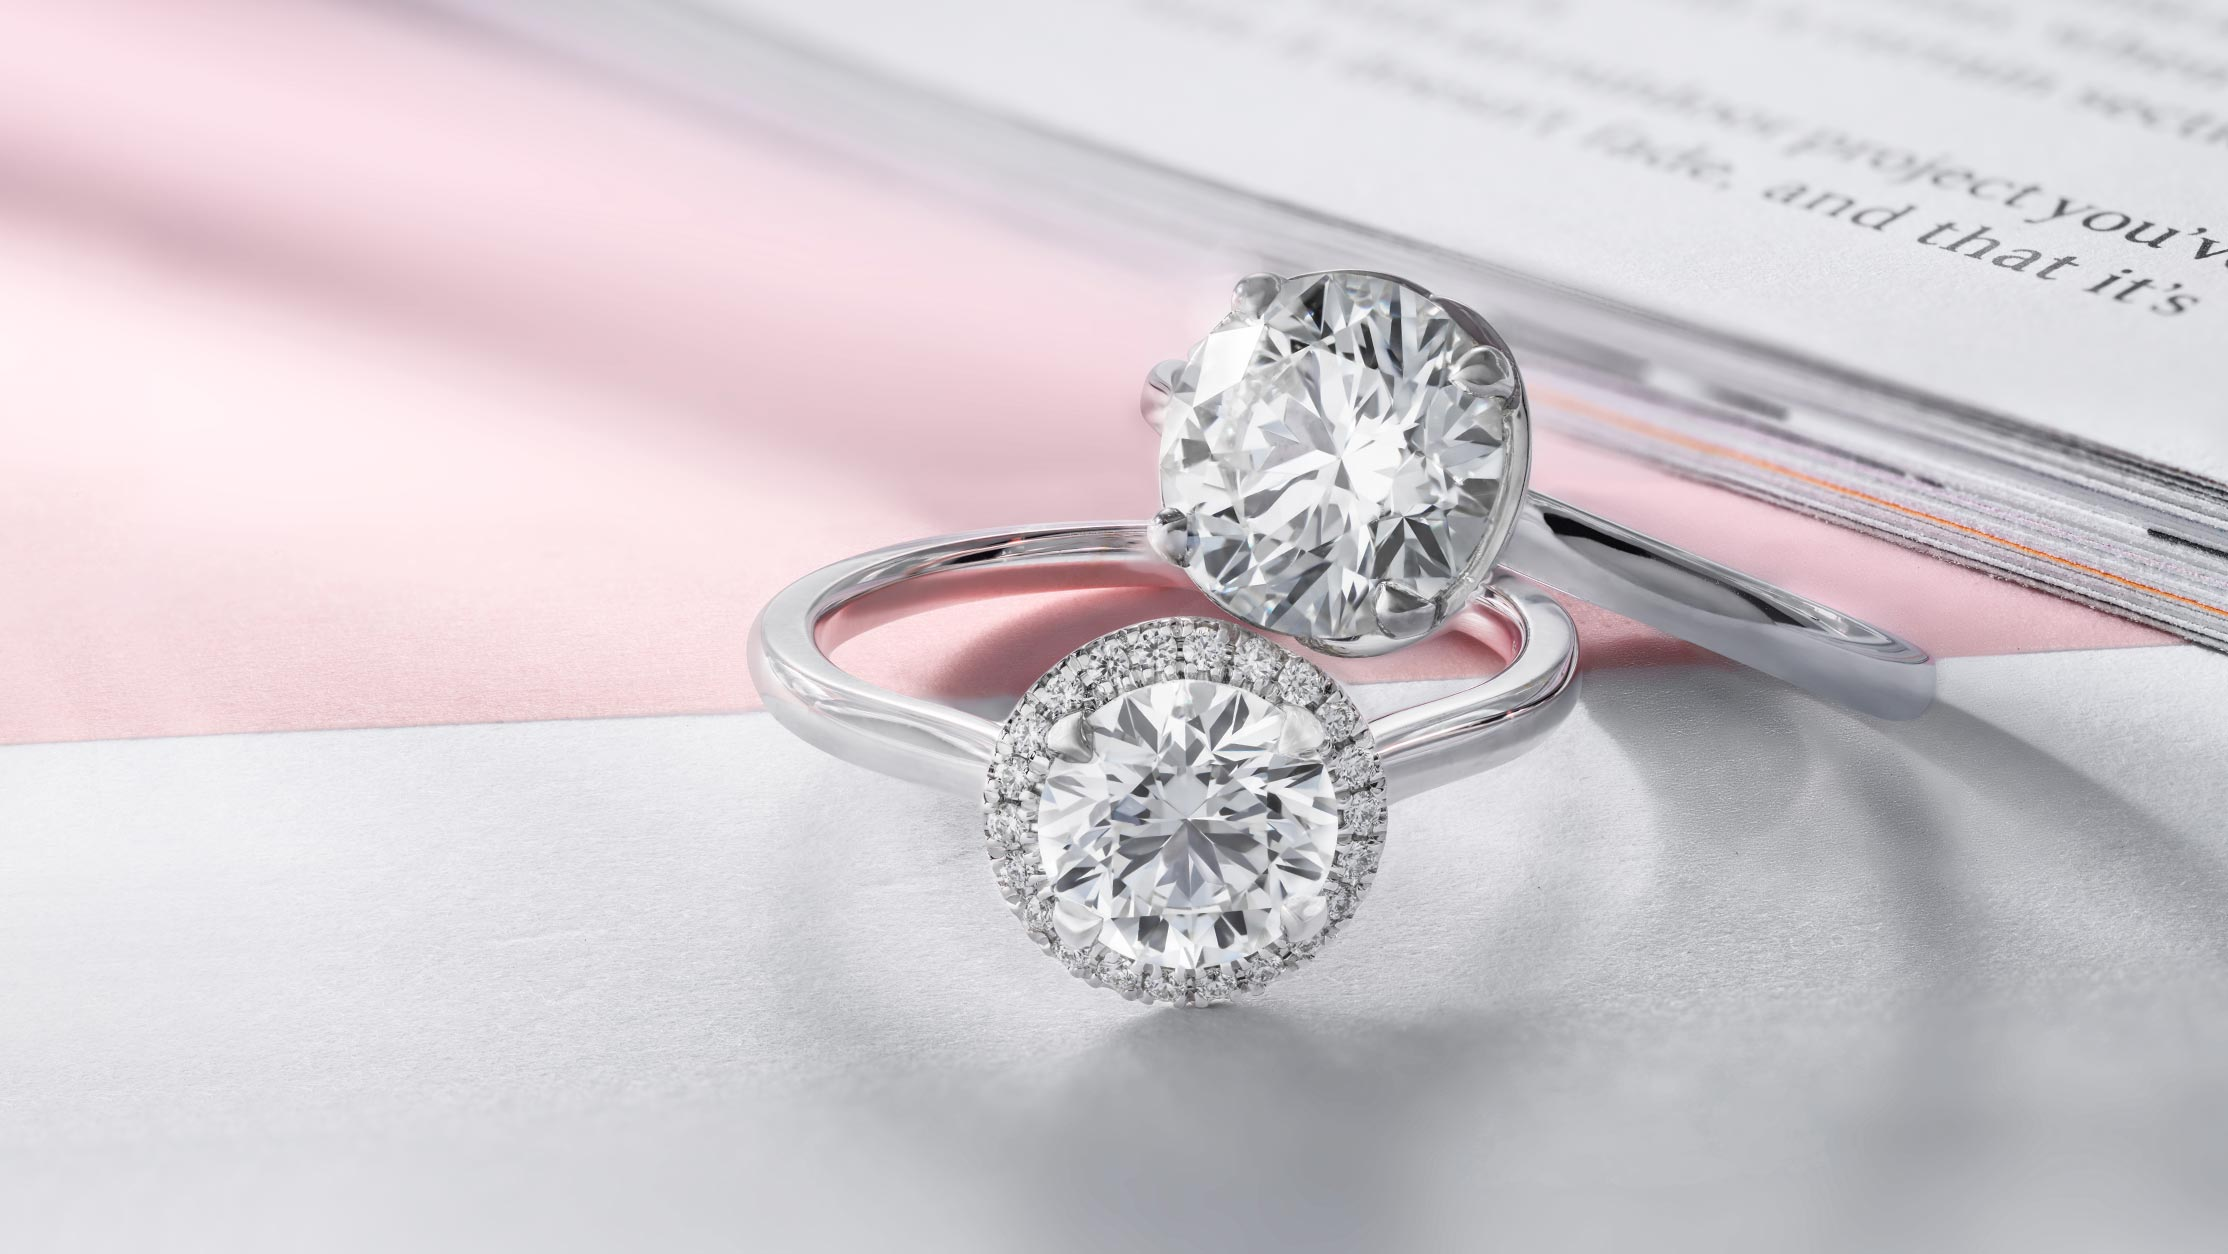 Halo and Solitaire engagement rings